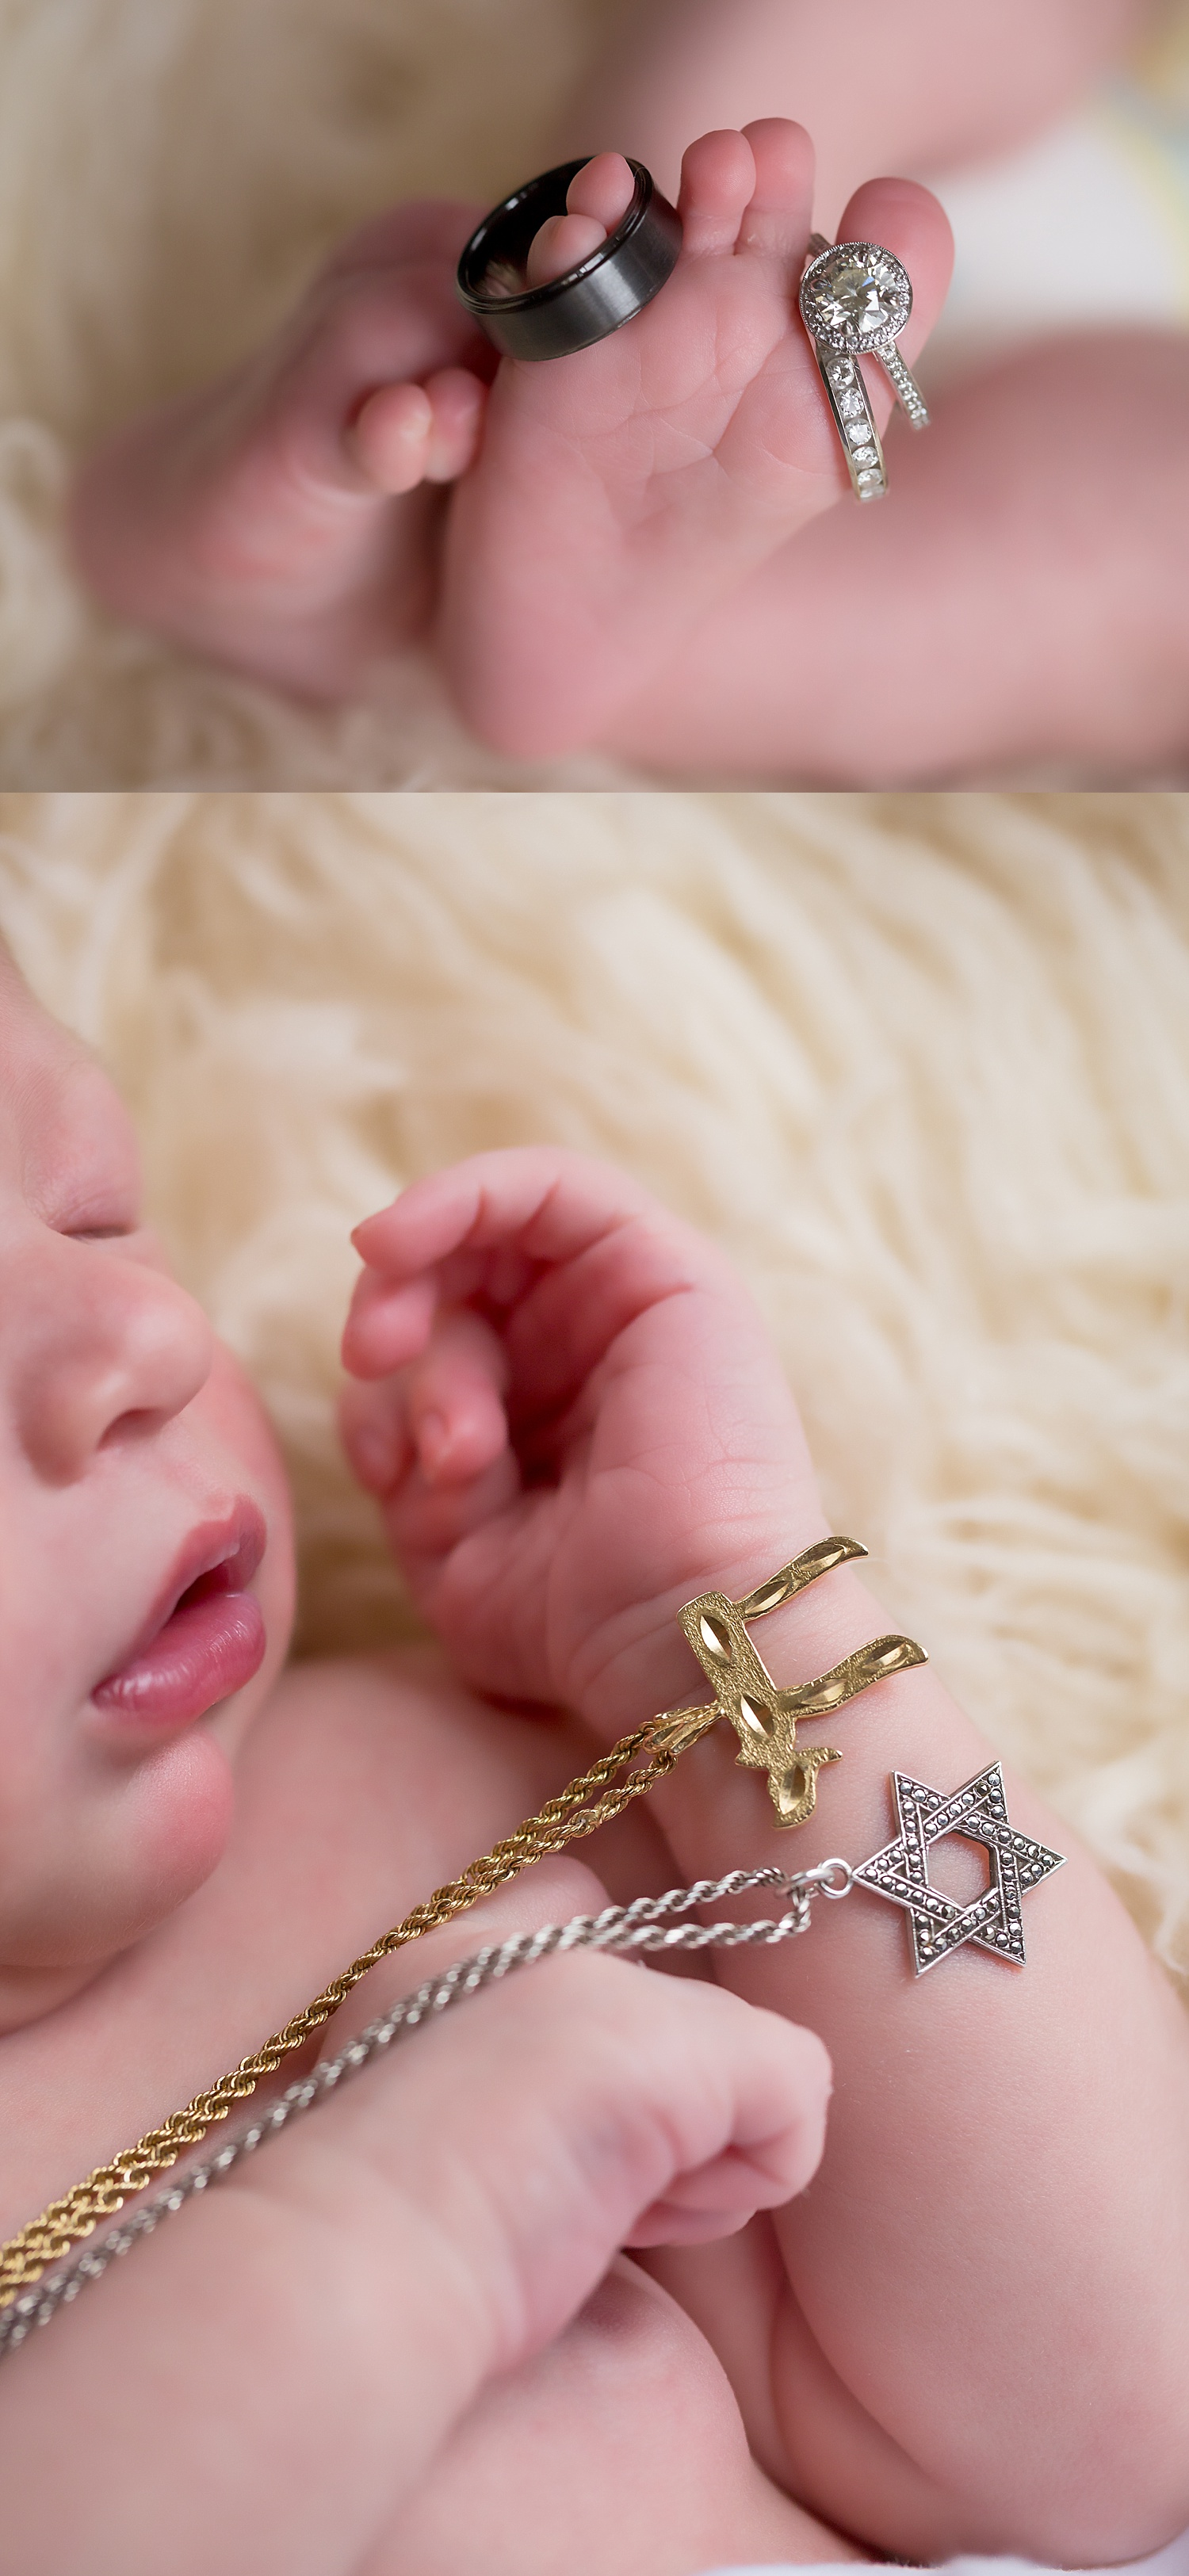 Baltimore Maryland in-home lifestyle newborn photographer